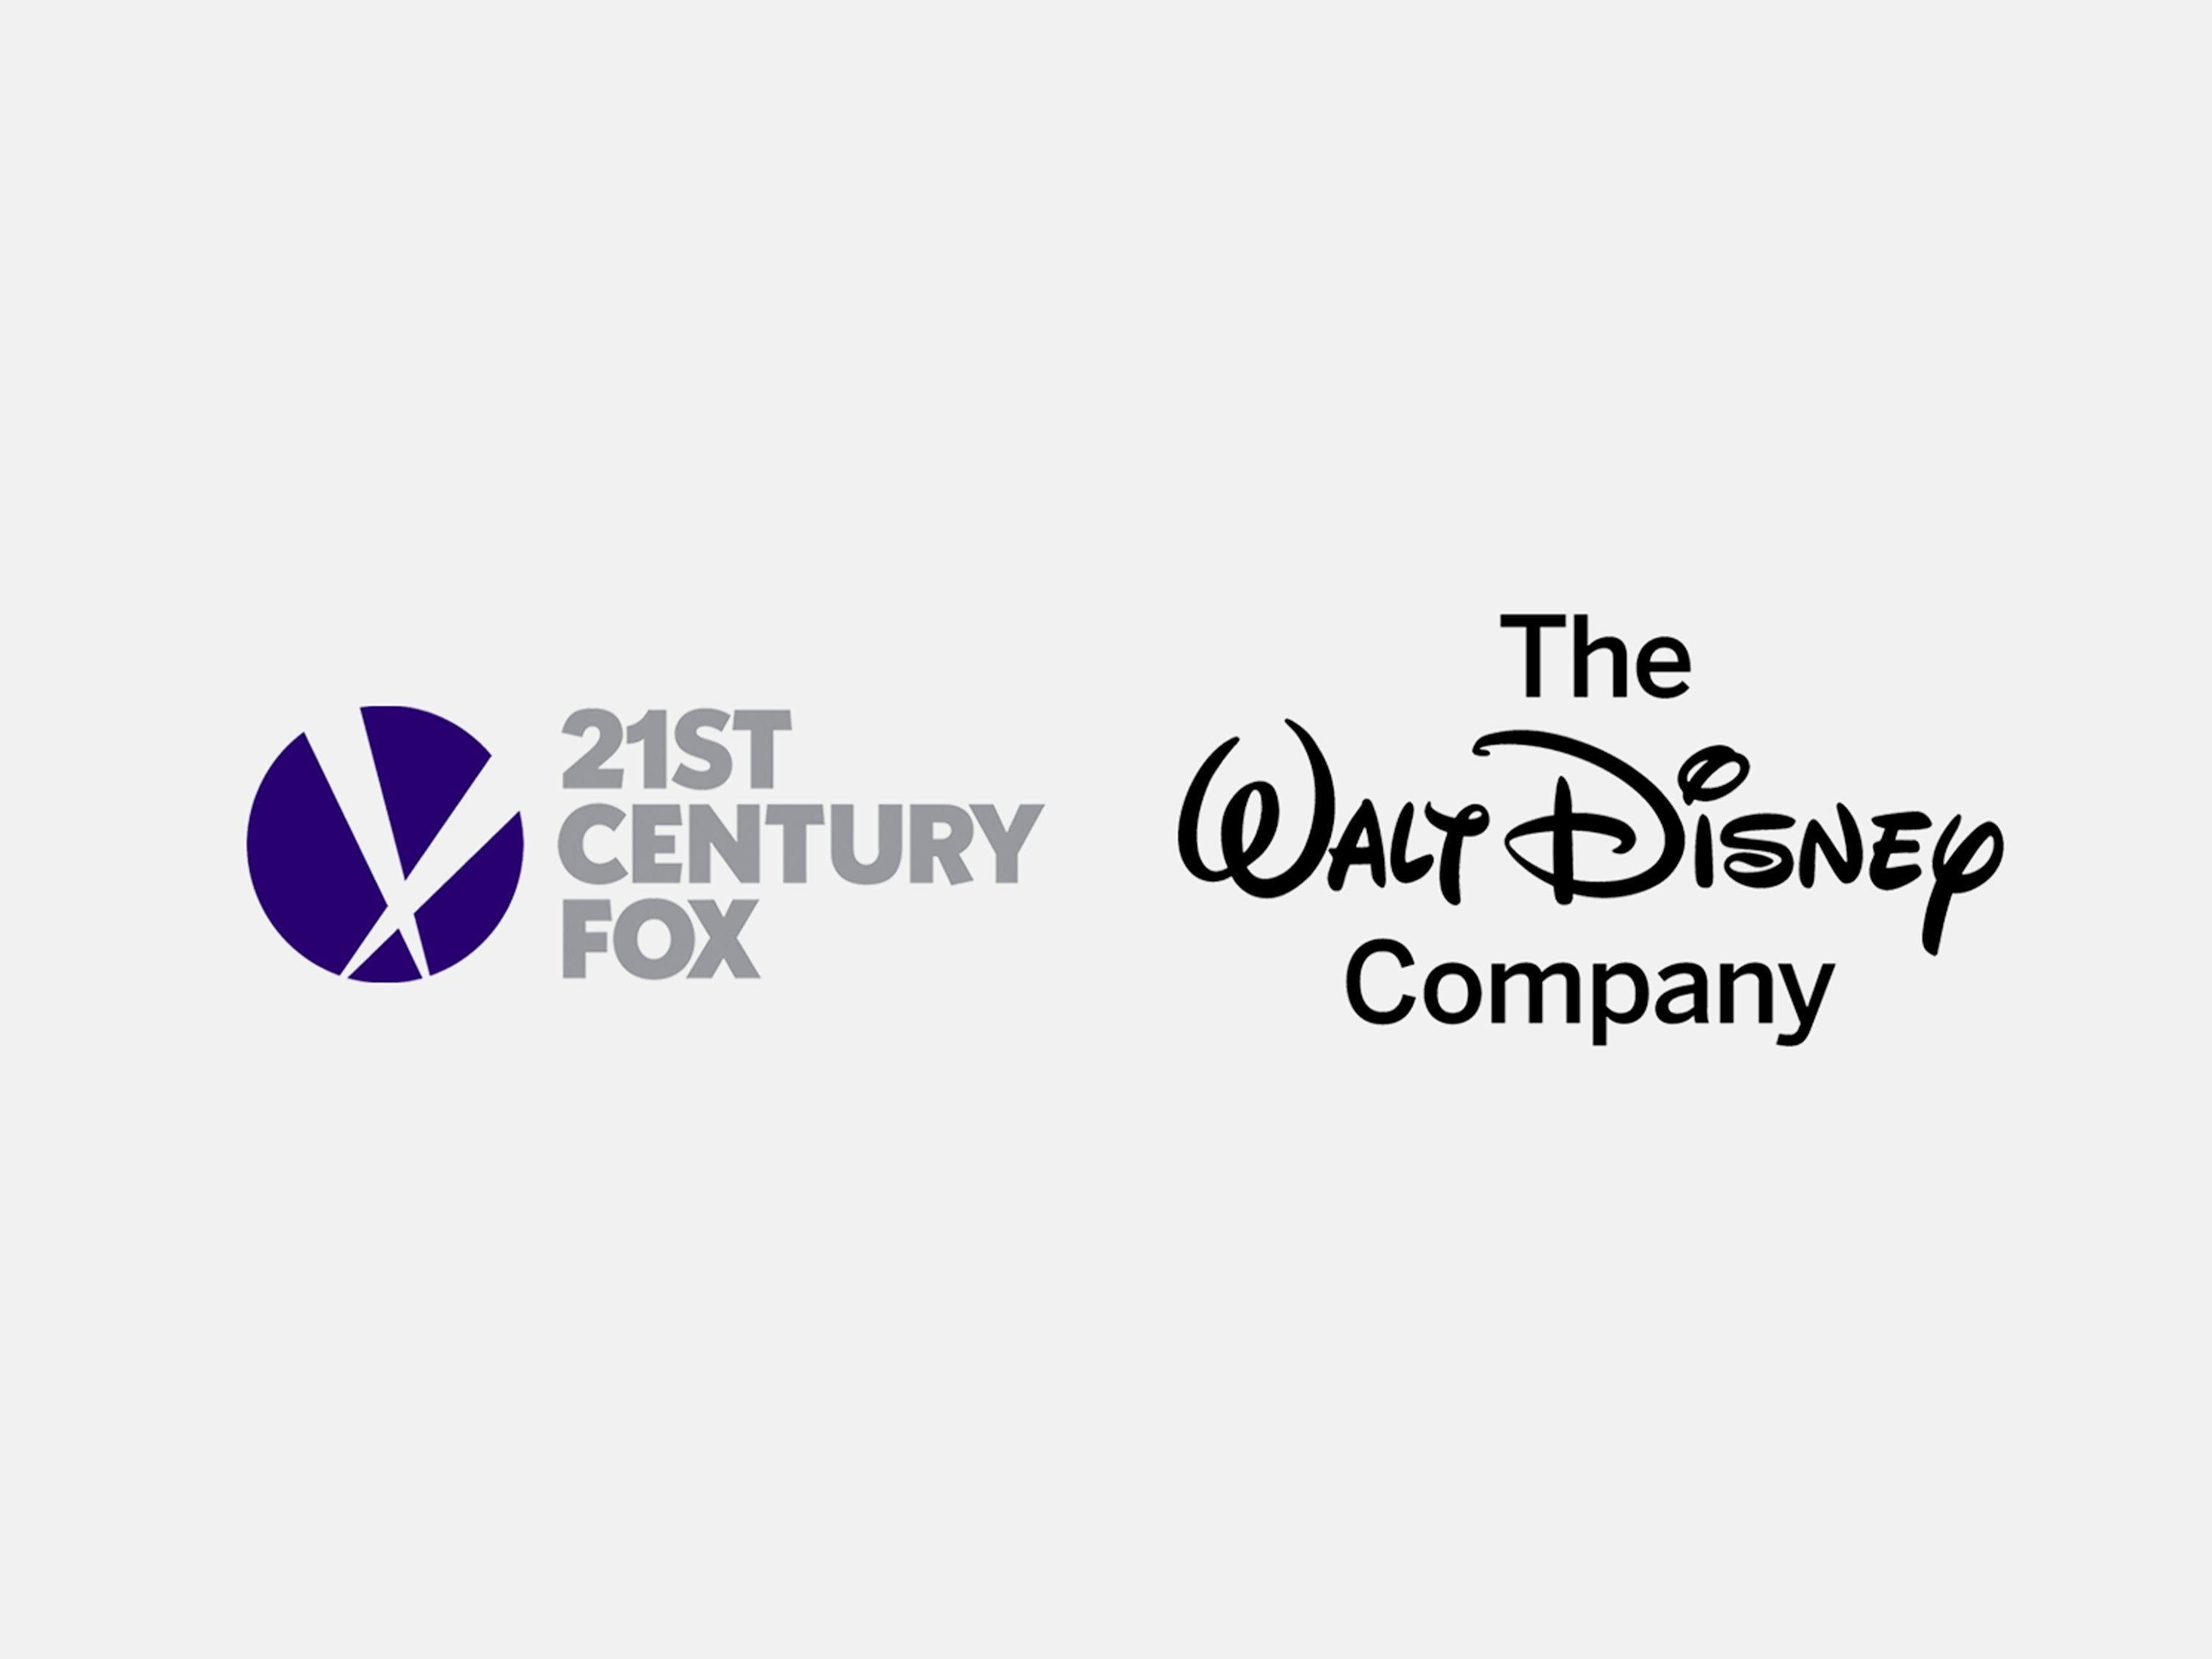 Disney is widely expected to acquire the majority of 21st Century Fox.